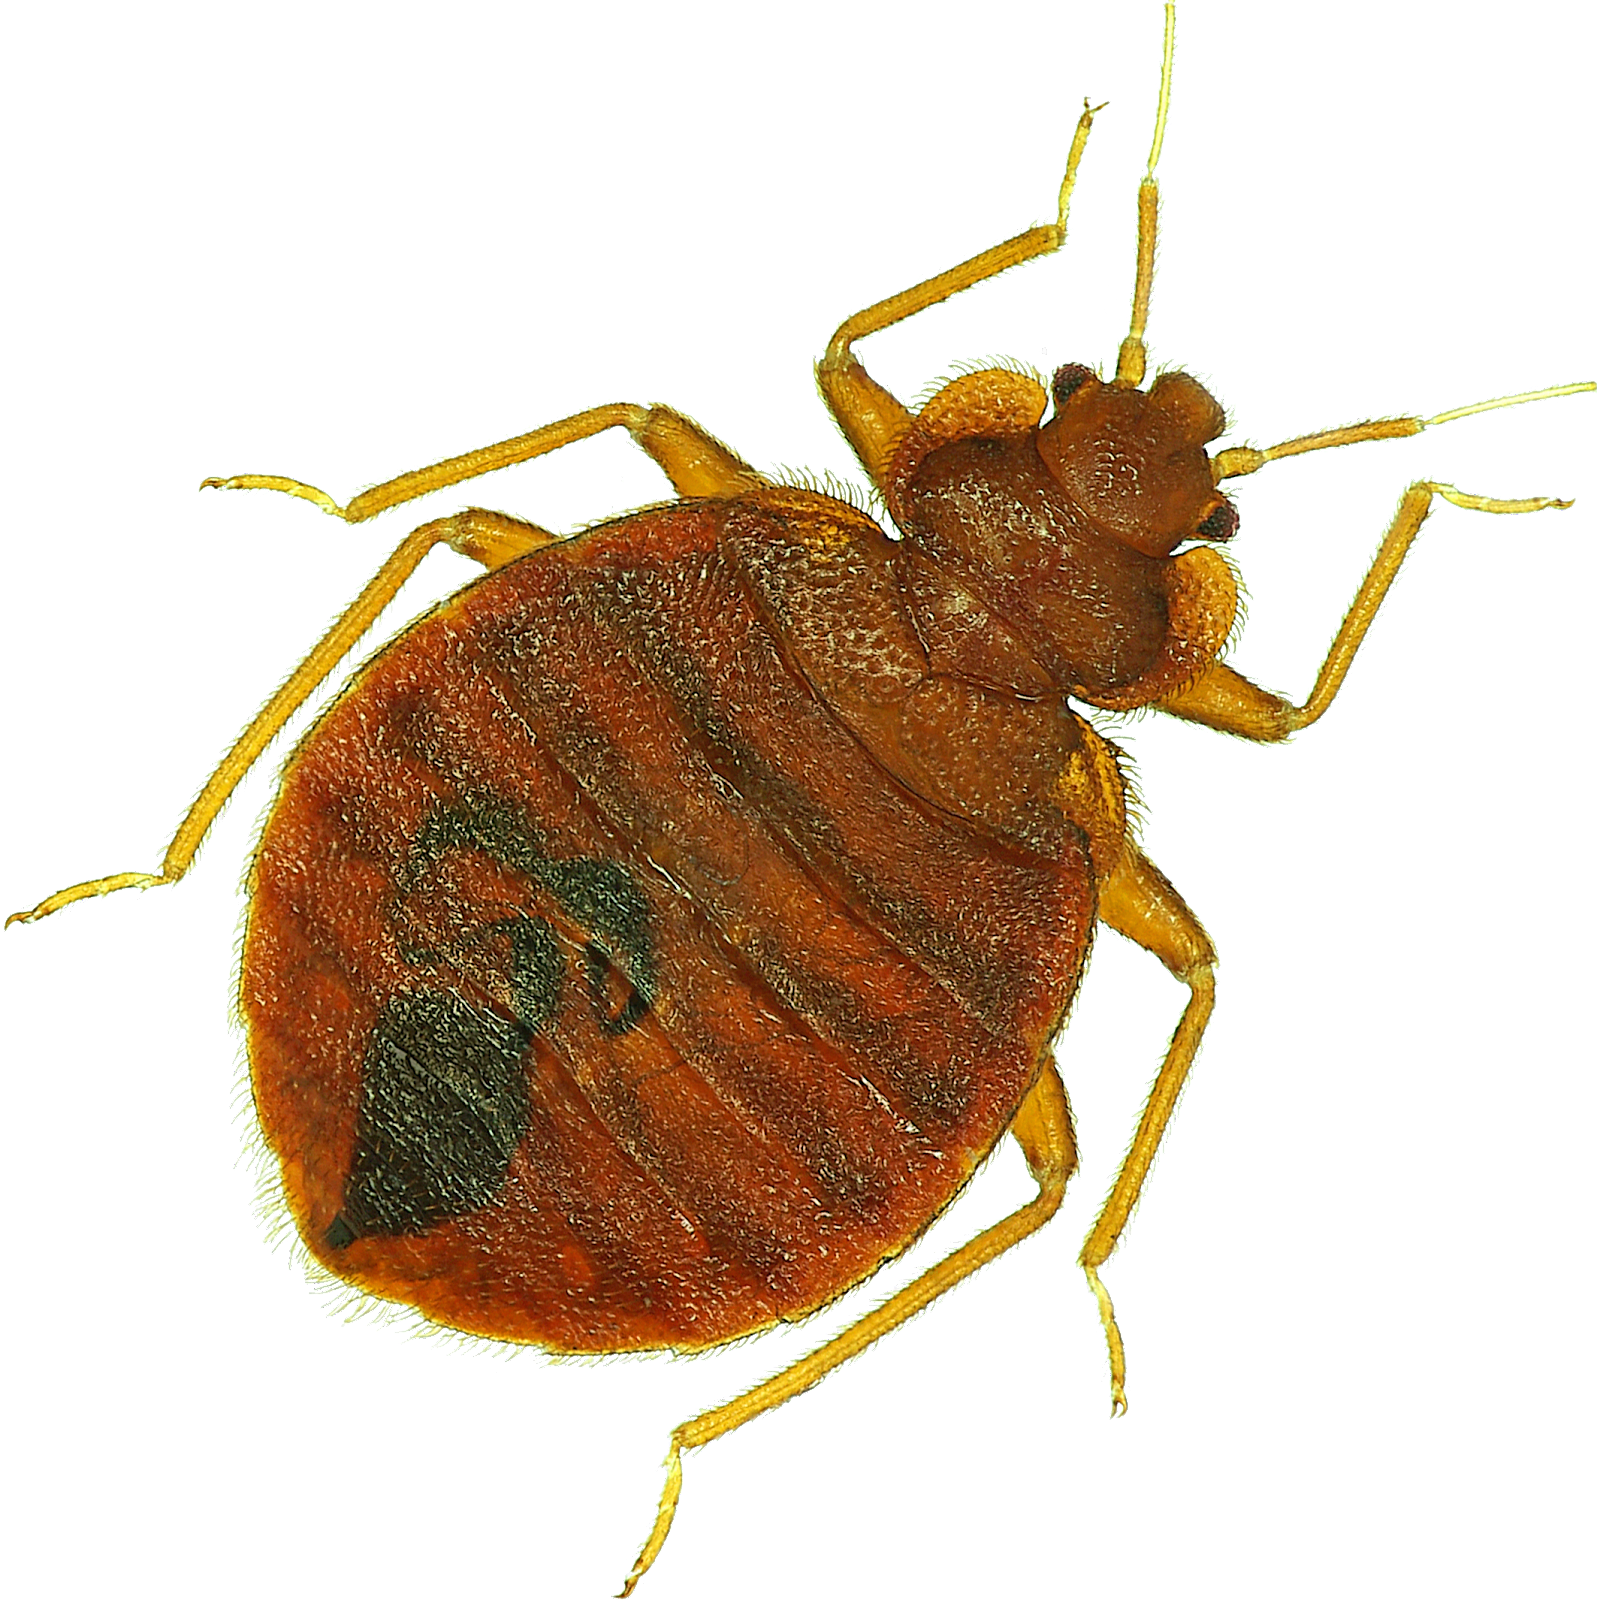 Adult bed bug up close